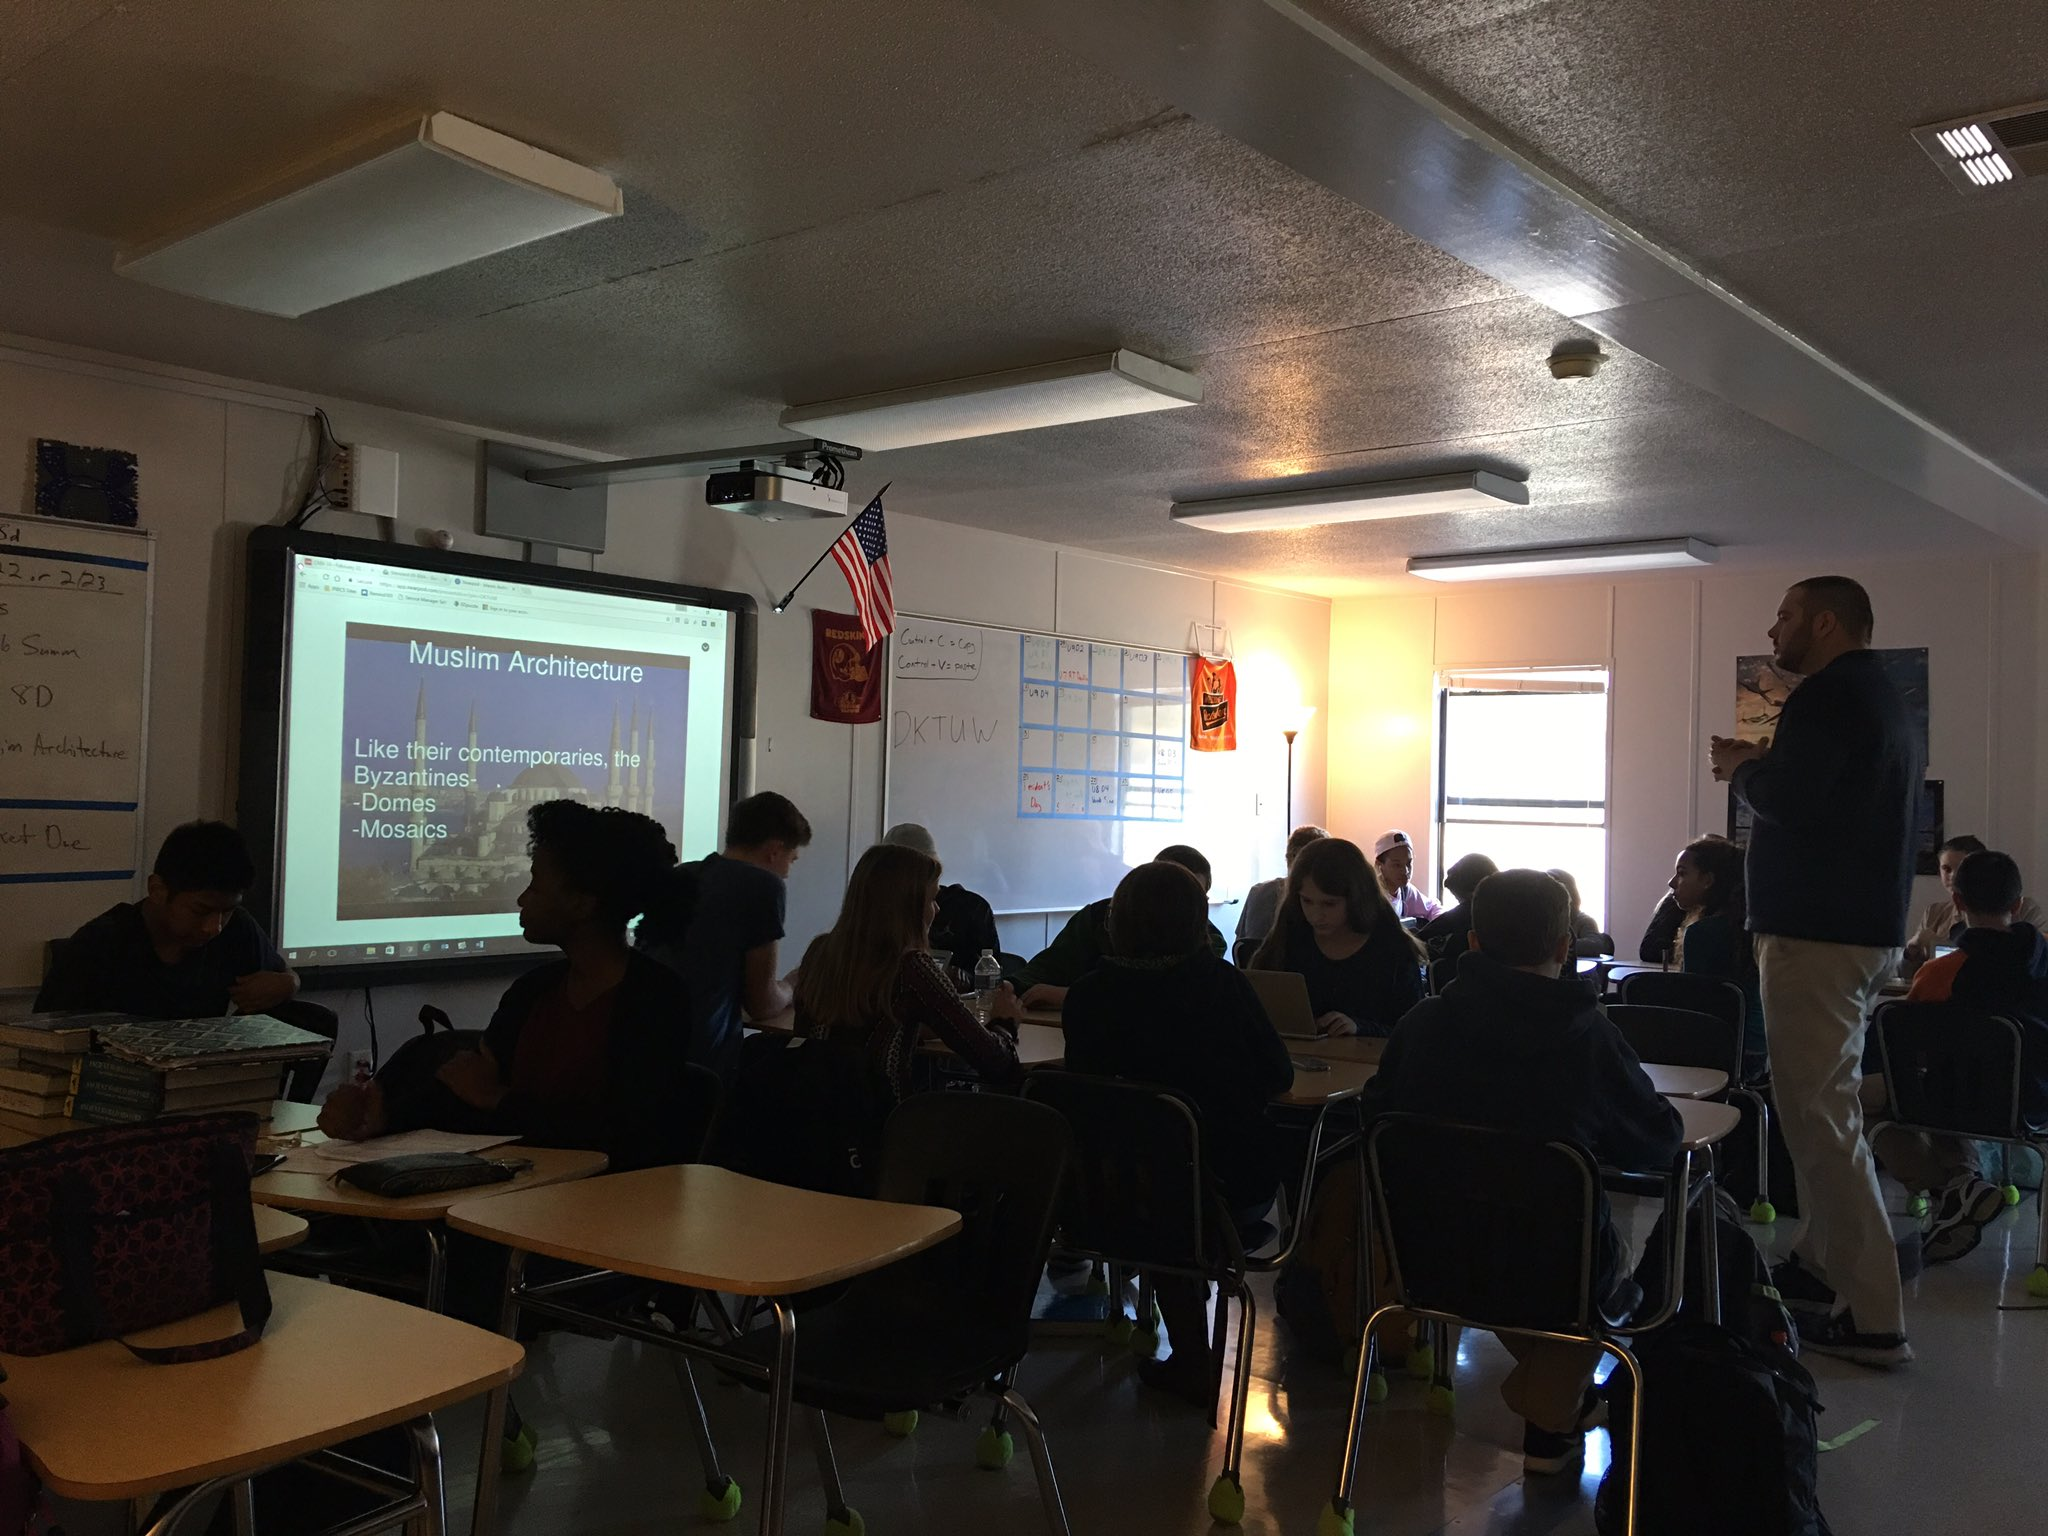 .@JNolanHistPHS and his class are using @nearpod to take a closer look at Muslim Architecture! #DLDay #PWCS https://t.co/nHDubnJgc1